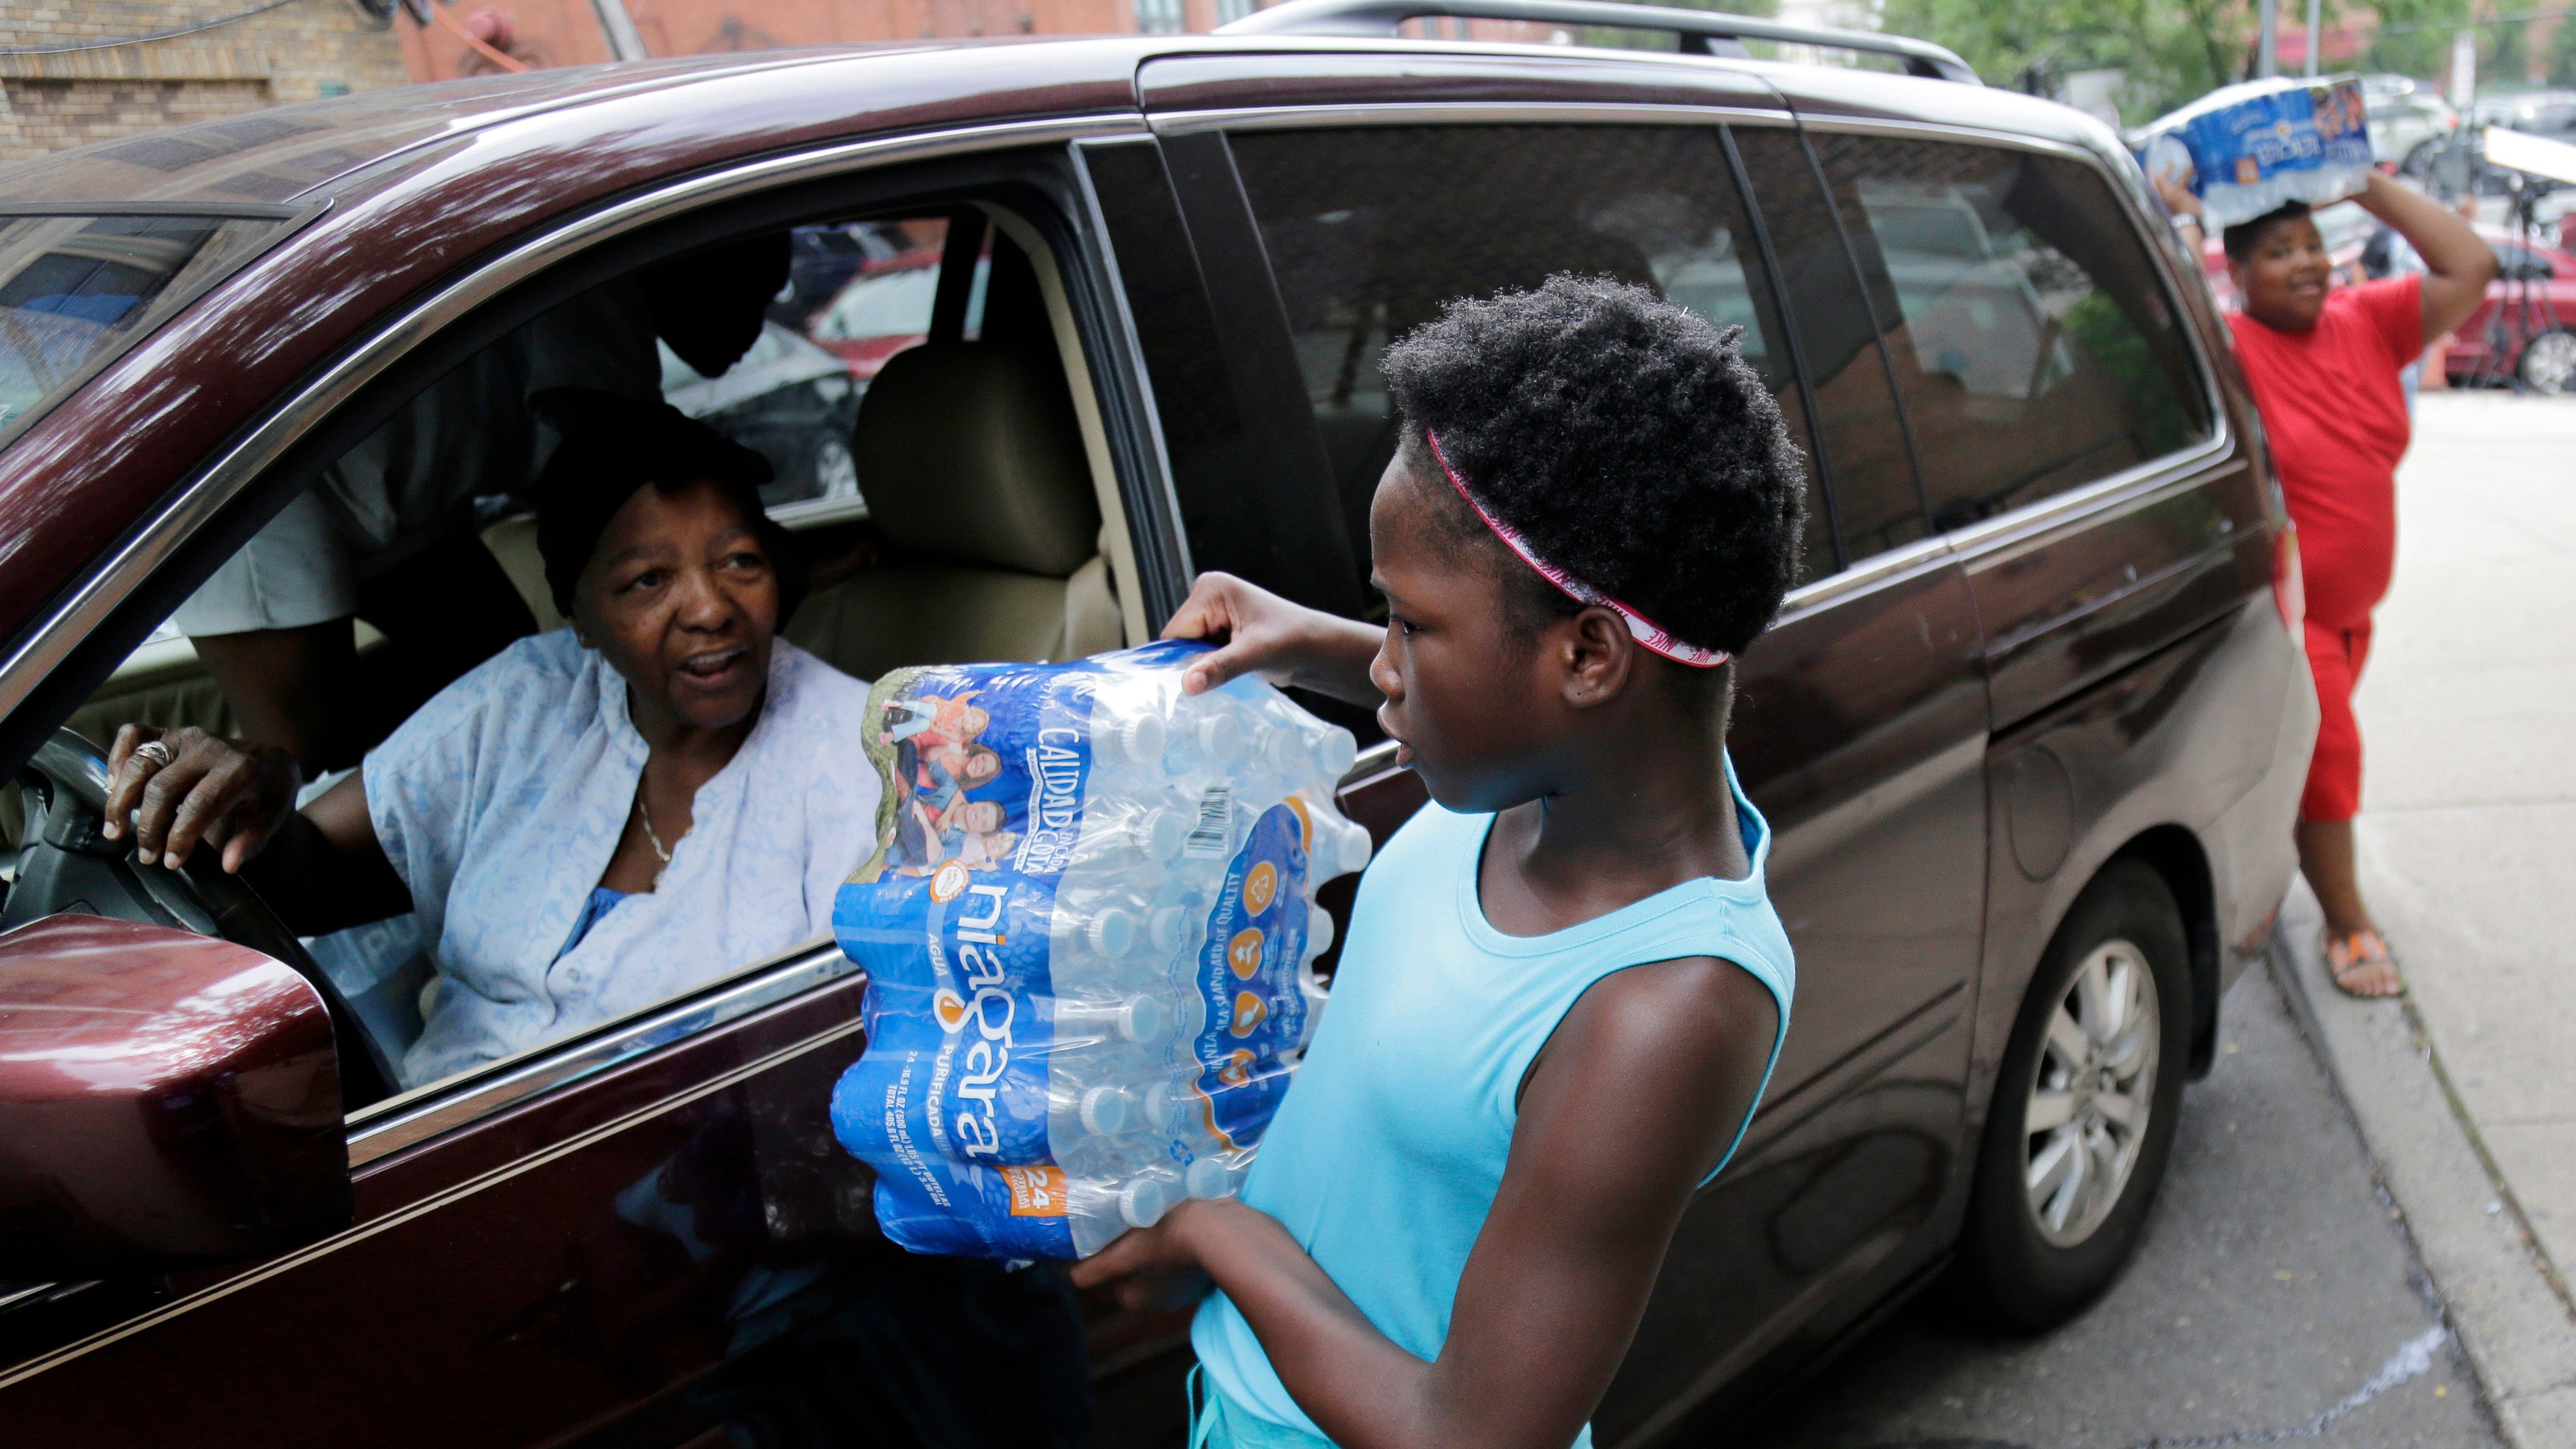 American Lead-Tainted Water Crisis Is Getting Worse